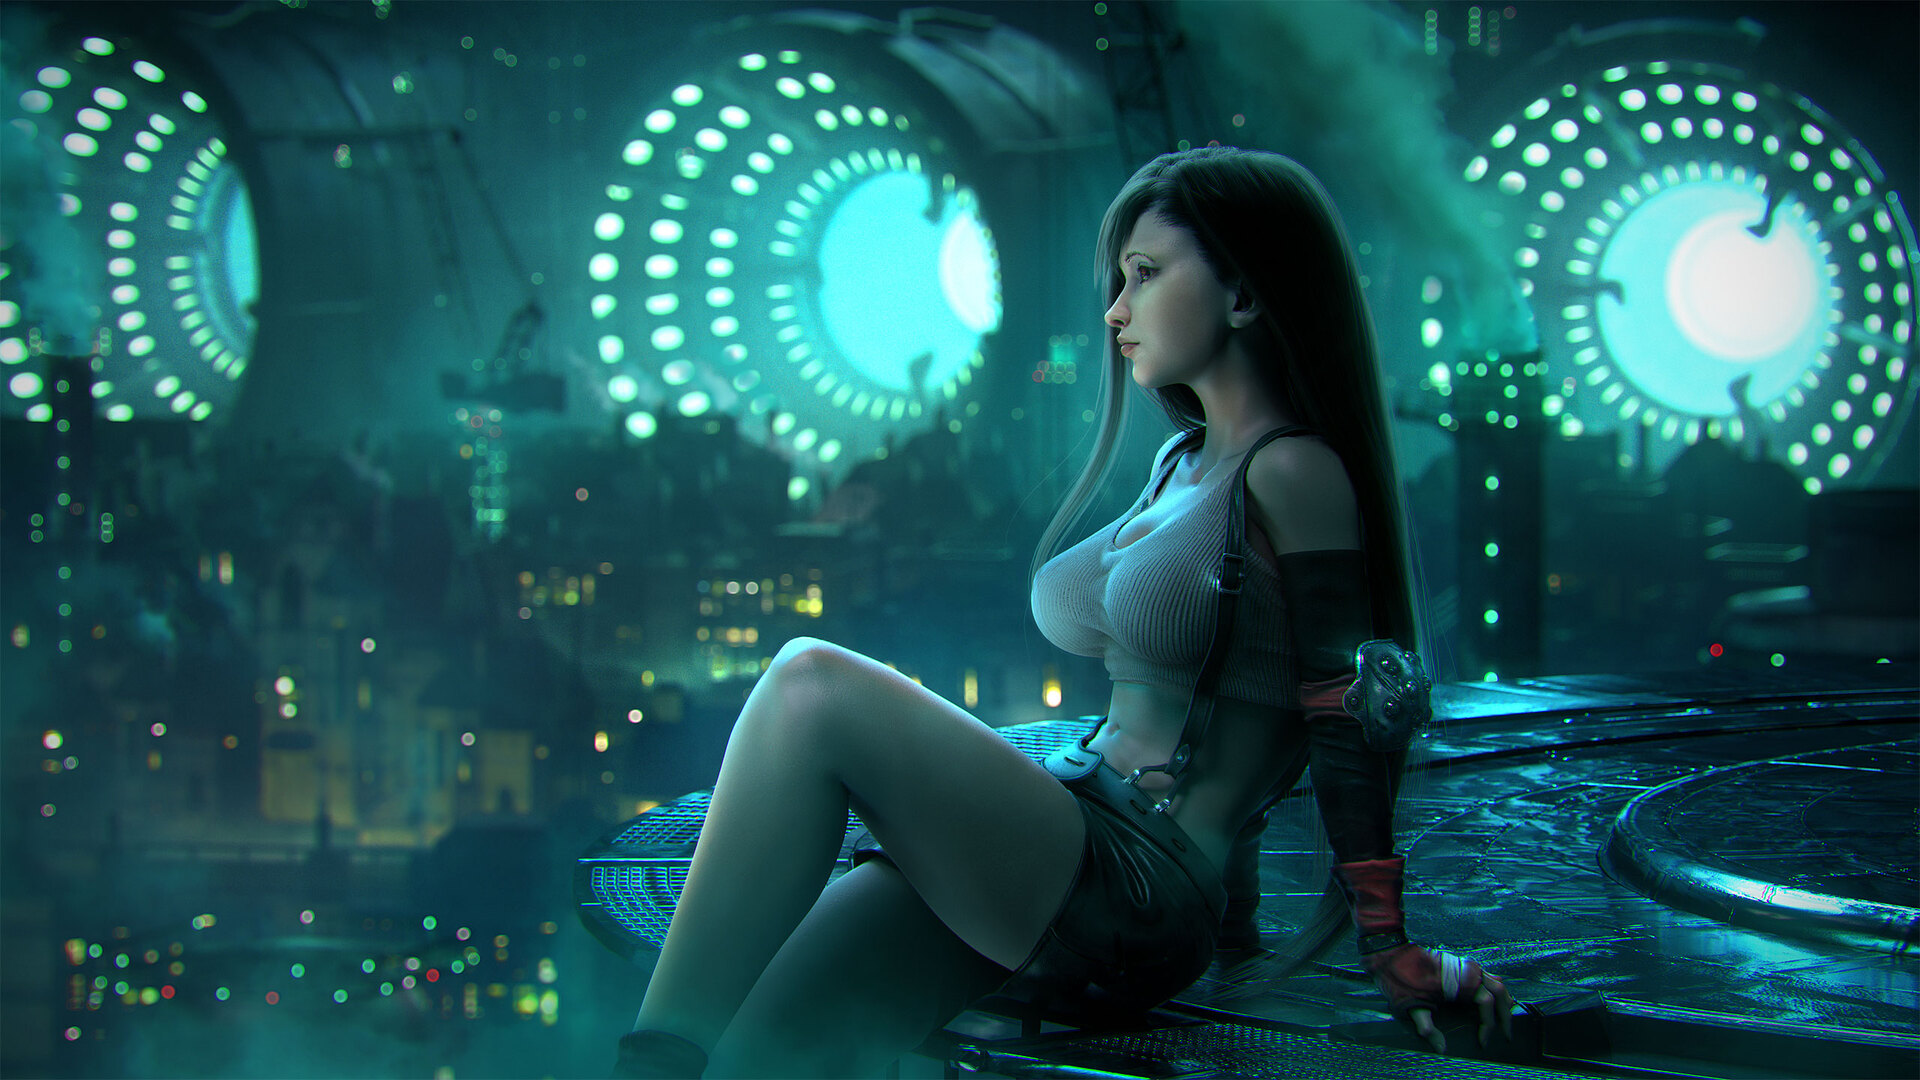 1920x1080 Tifa Lockhart Final Fantasy Artwork Laptop Full